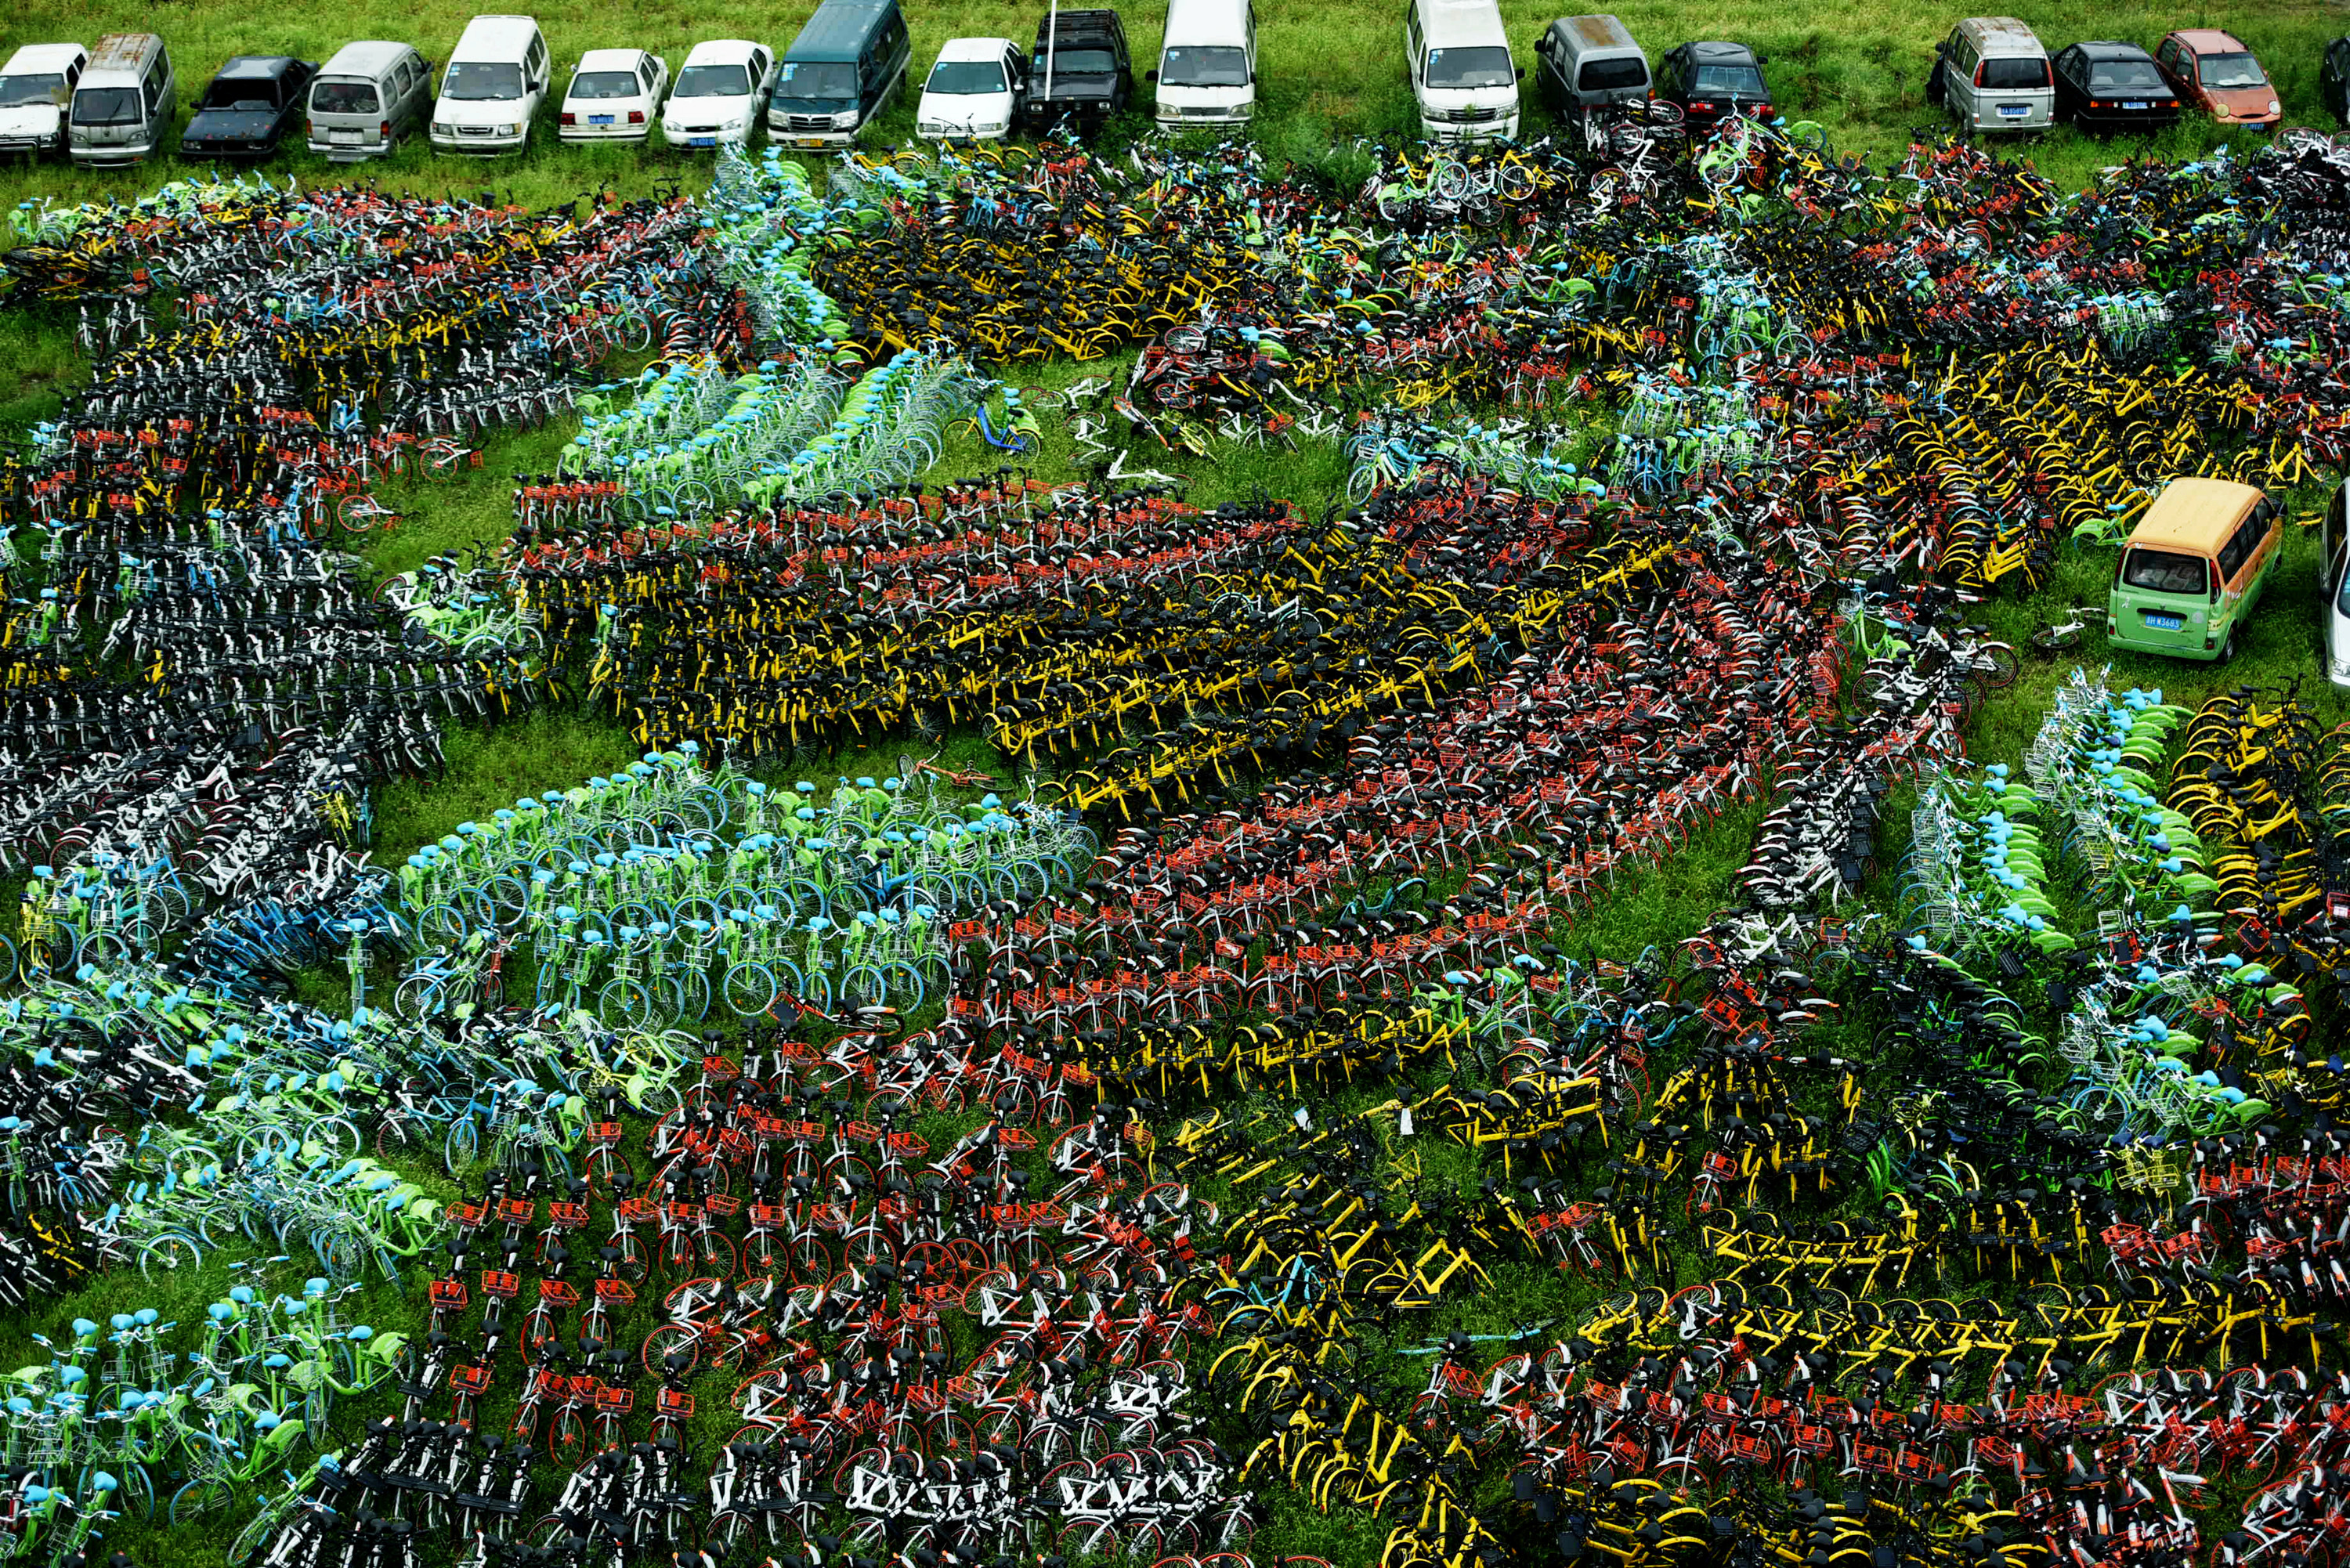 Bicycles of various bike-sharing services are seen at an urban village in Hangzhou, Zhejiang province, China September 7, 2017.